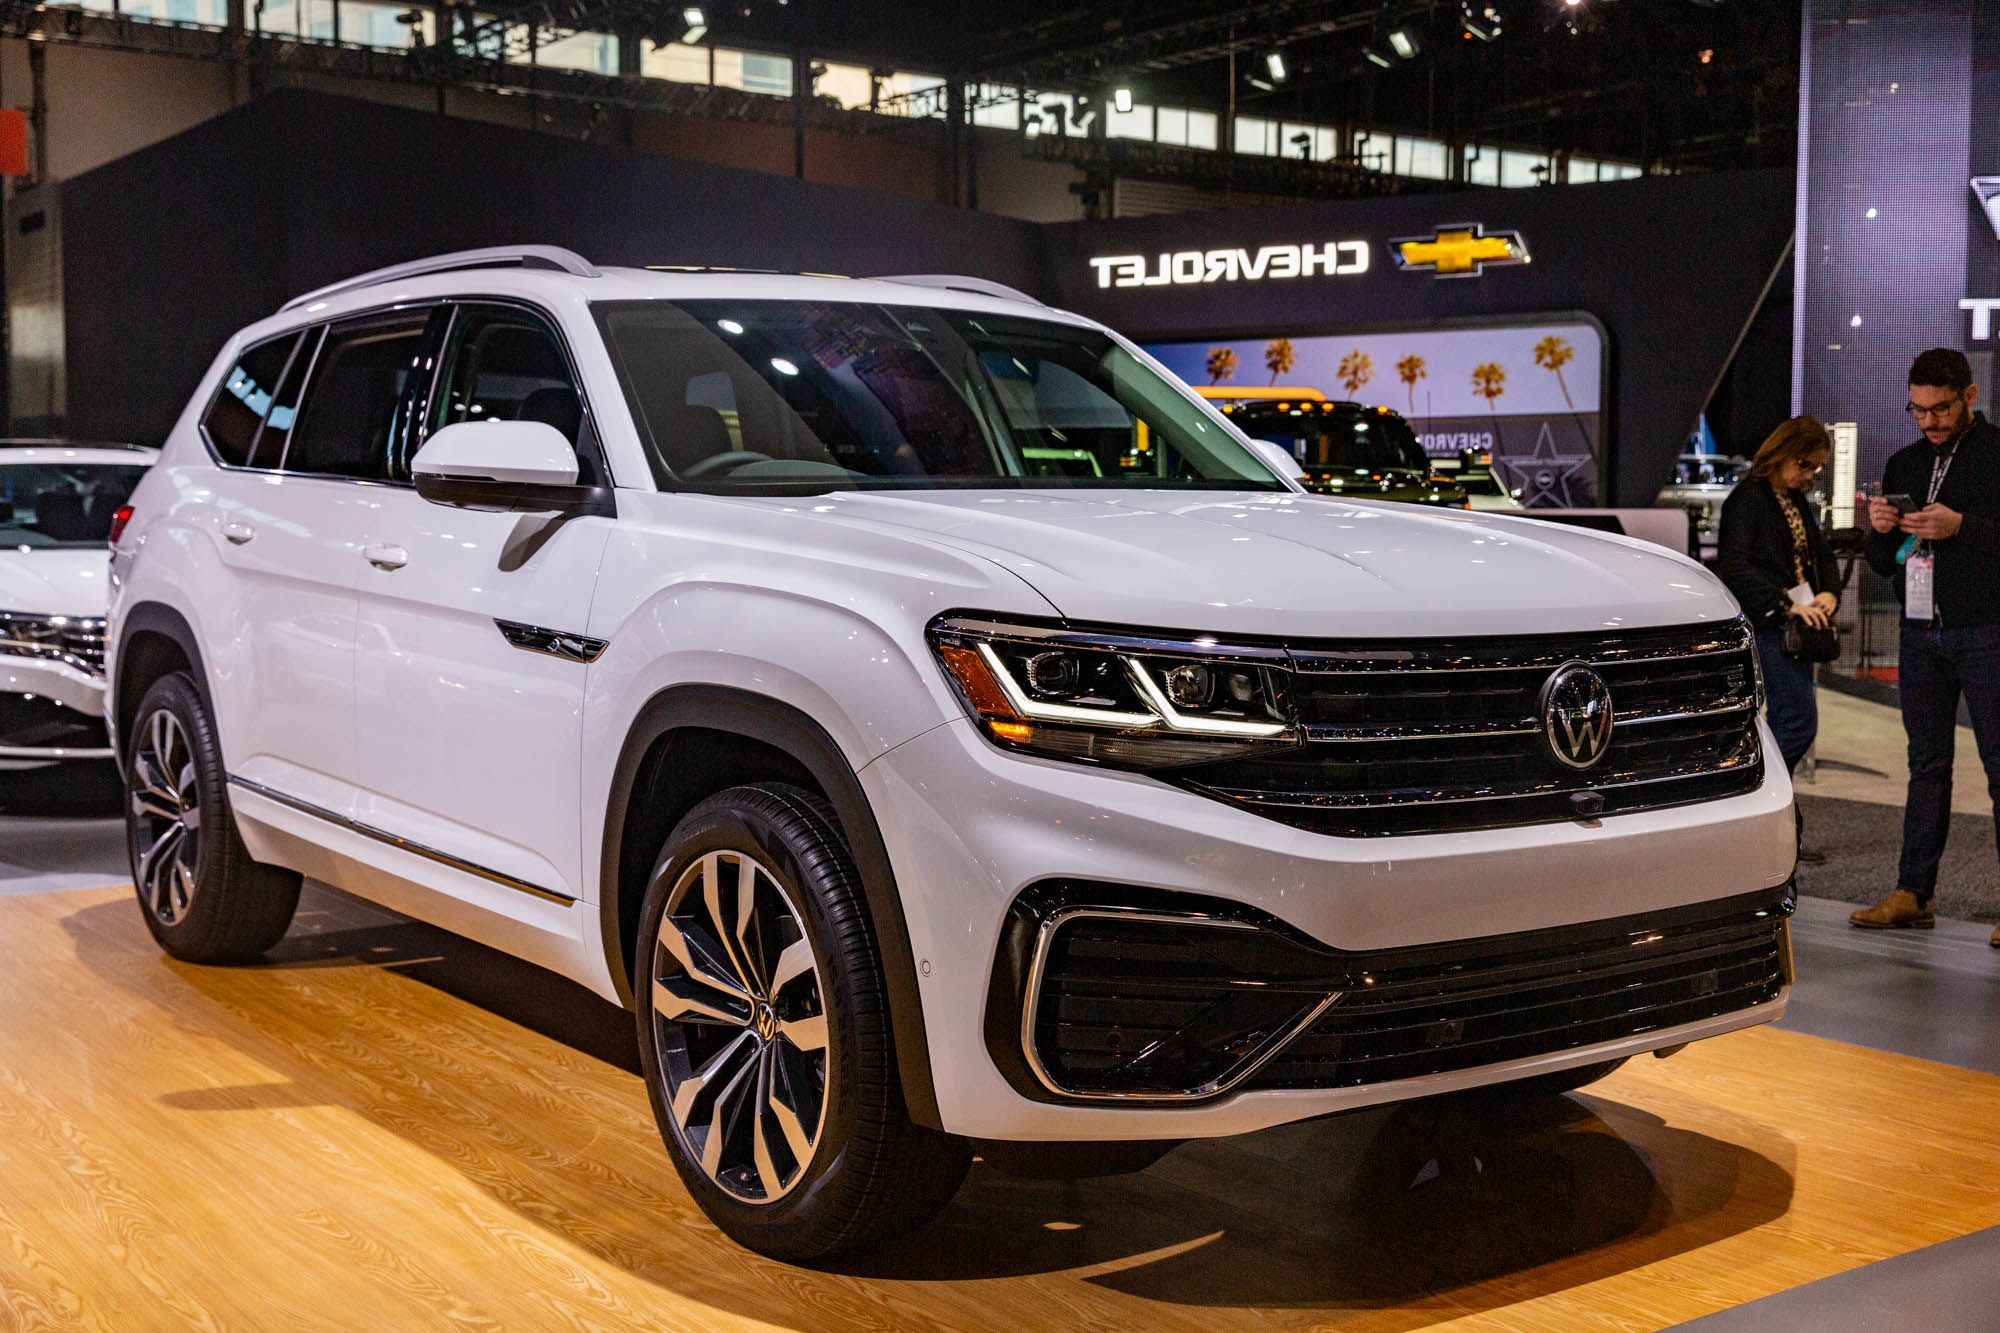 2021 Vw Atlas Cross Sport Hybrid Release Date Specs Colors Models In 2020 Volkswagen Suv Suv Prices